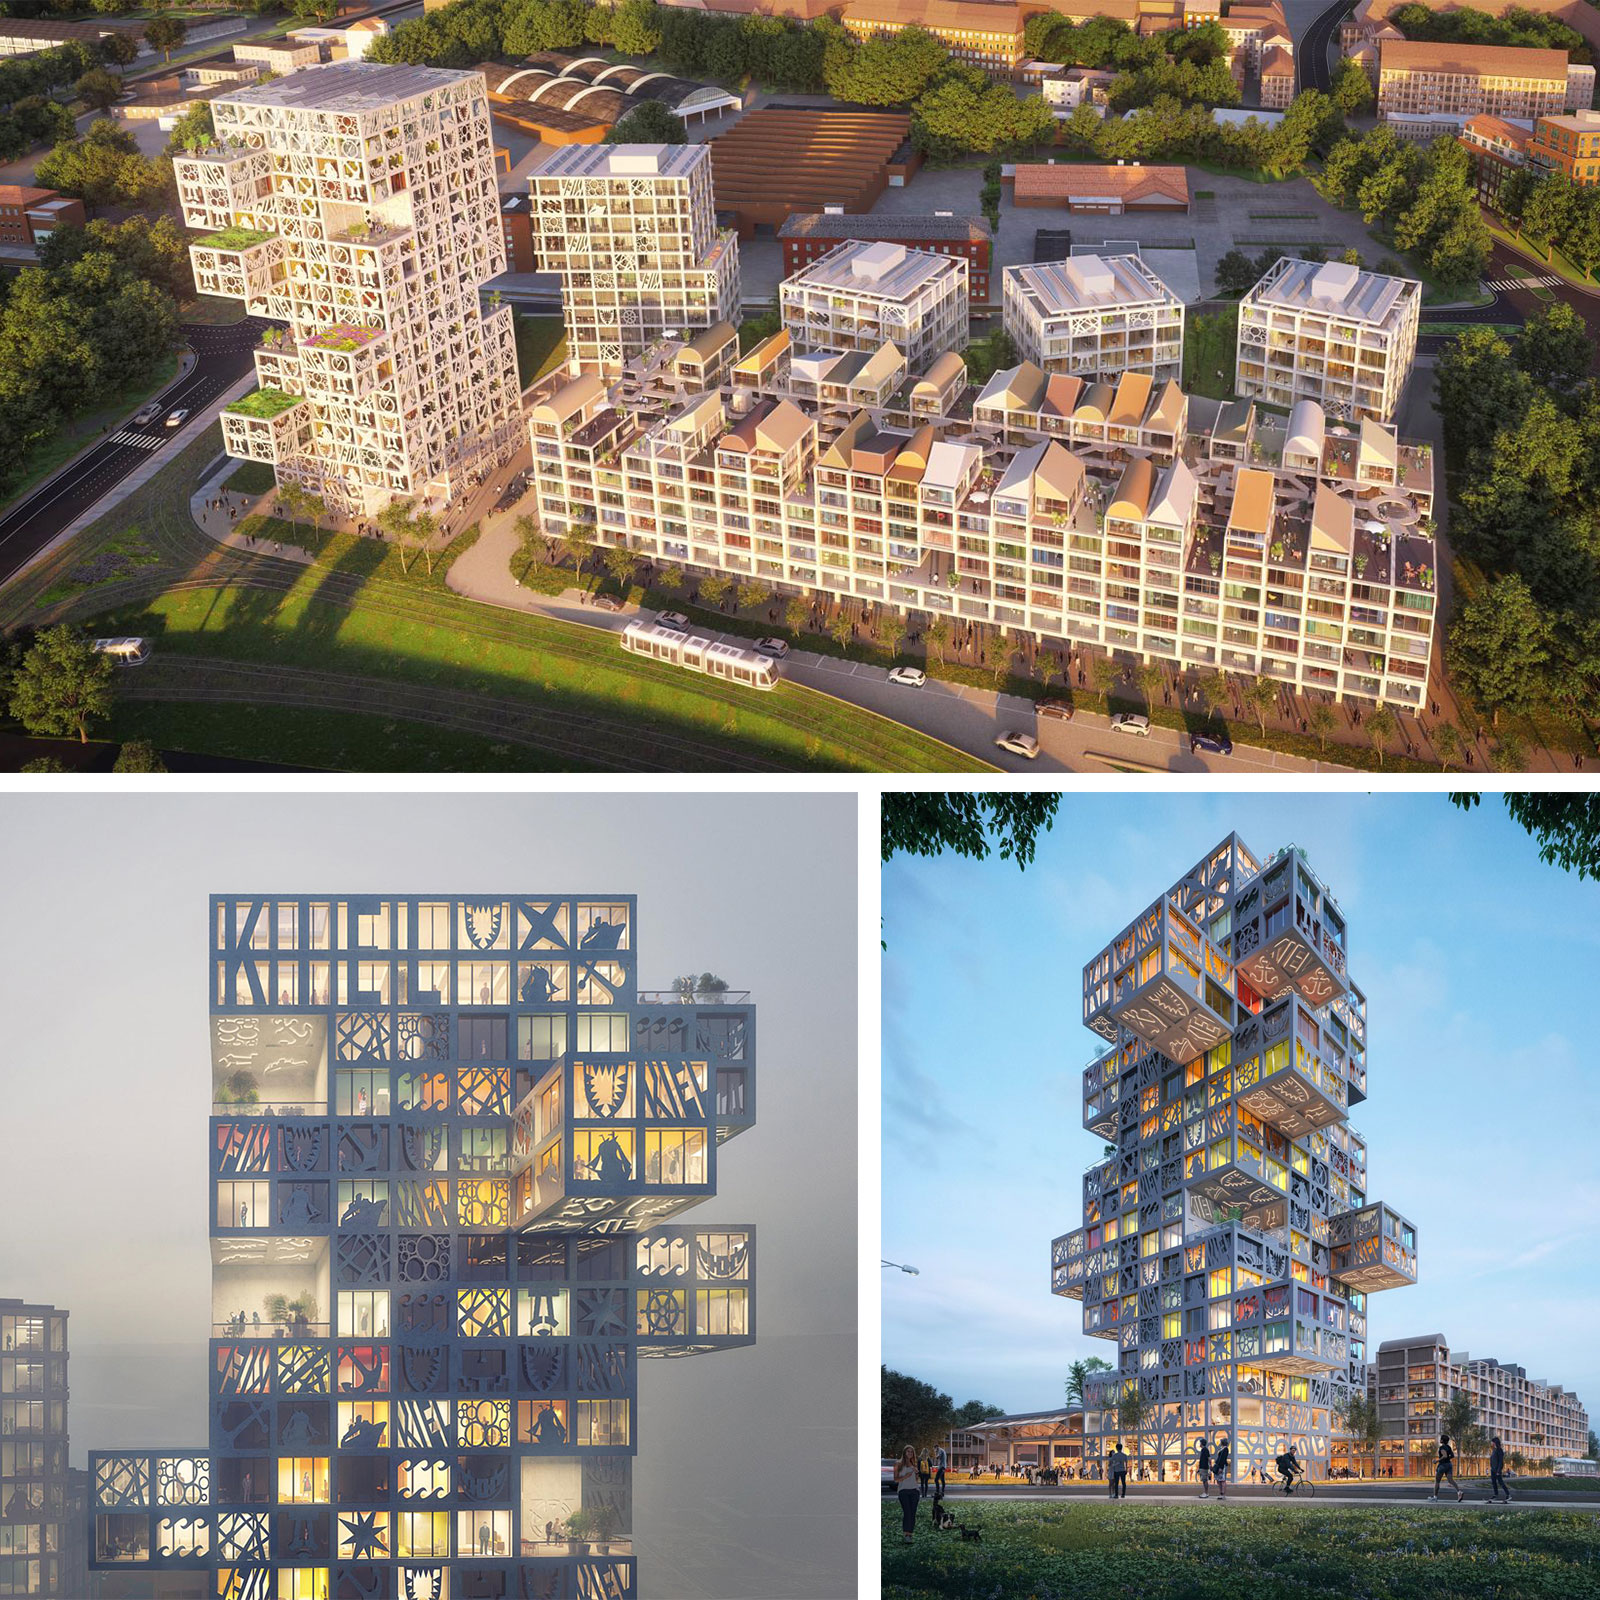 Proposed 'KoolKiel' development by MVRDV